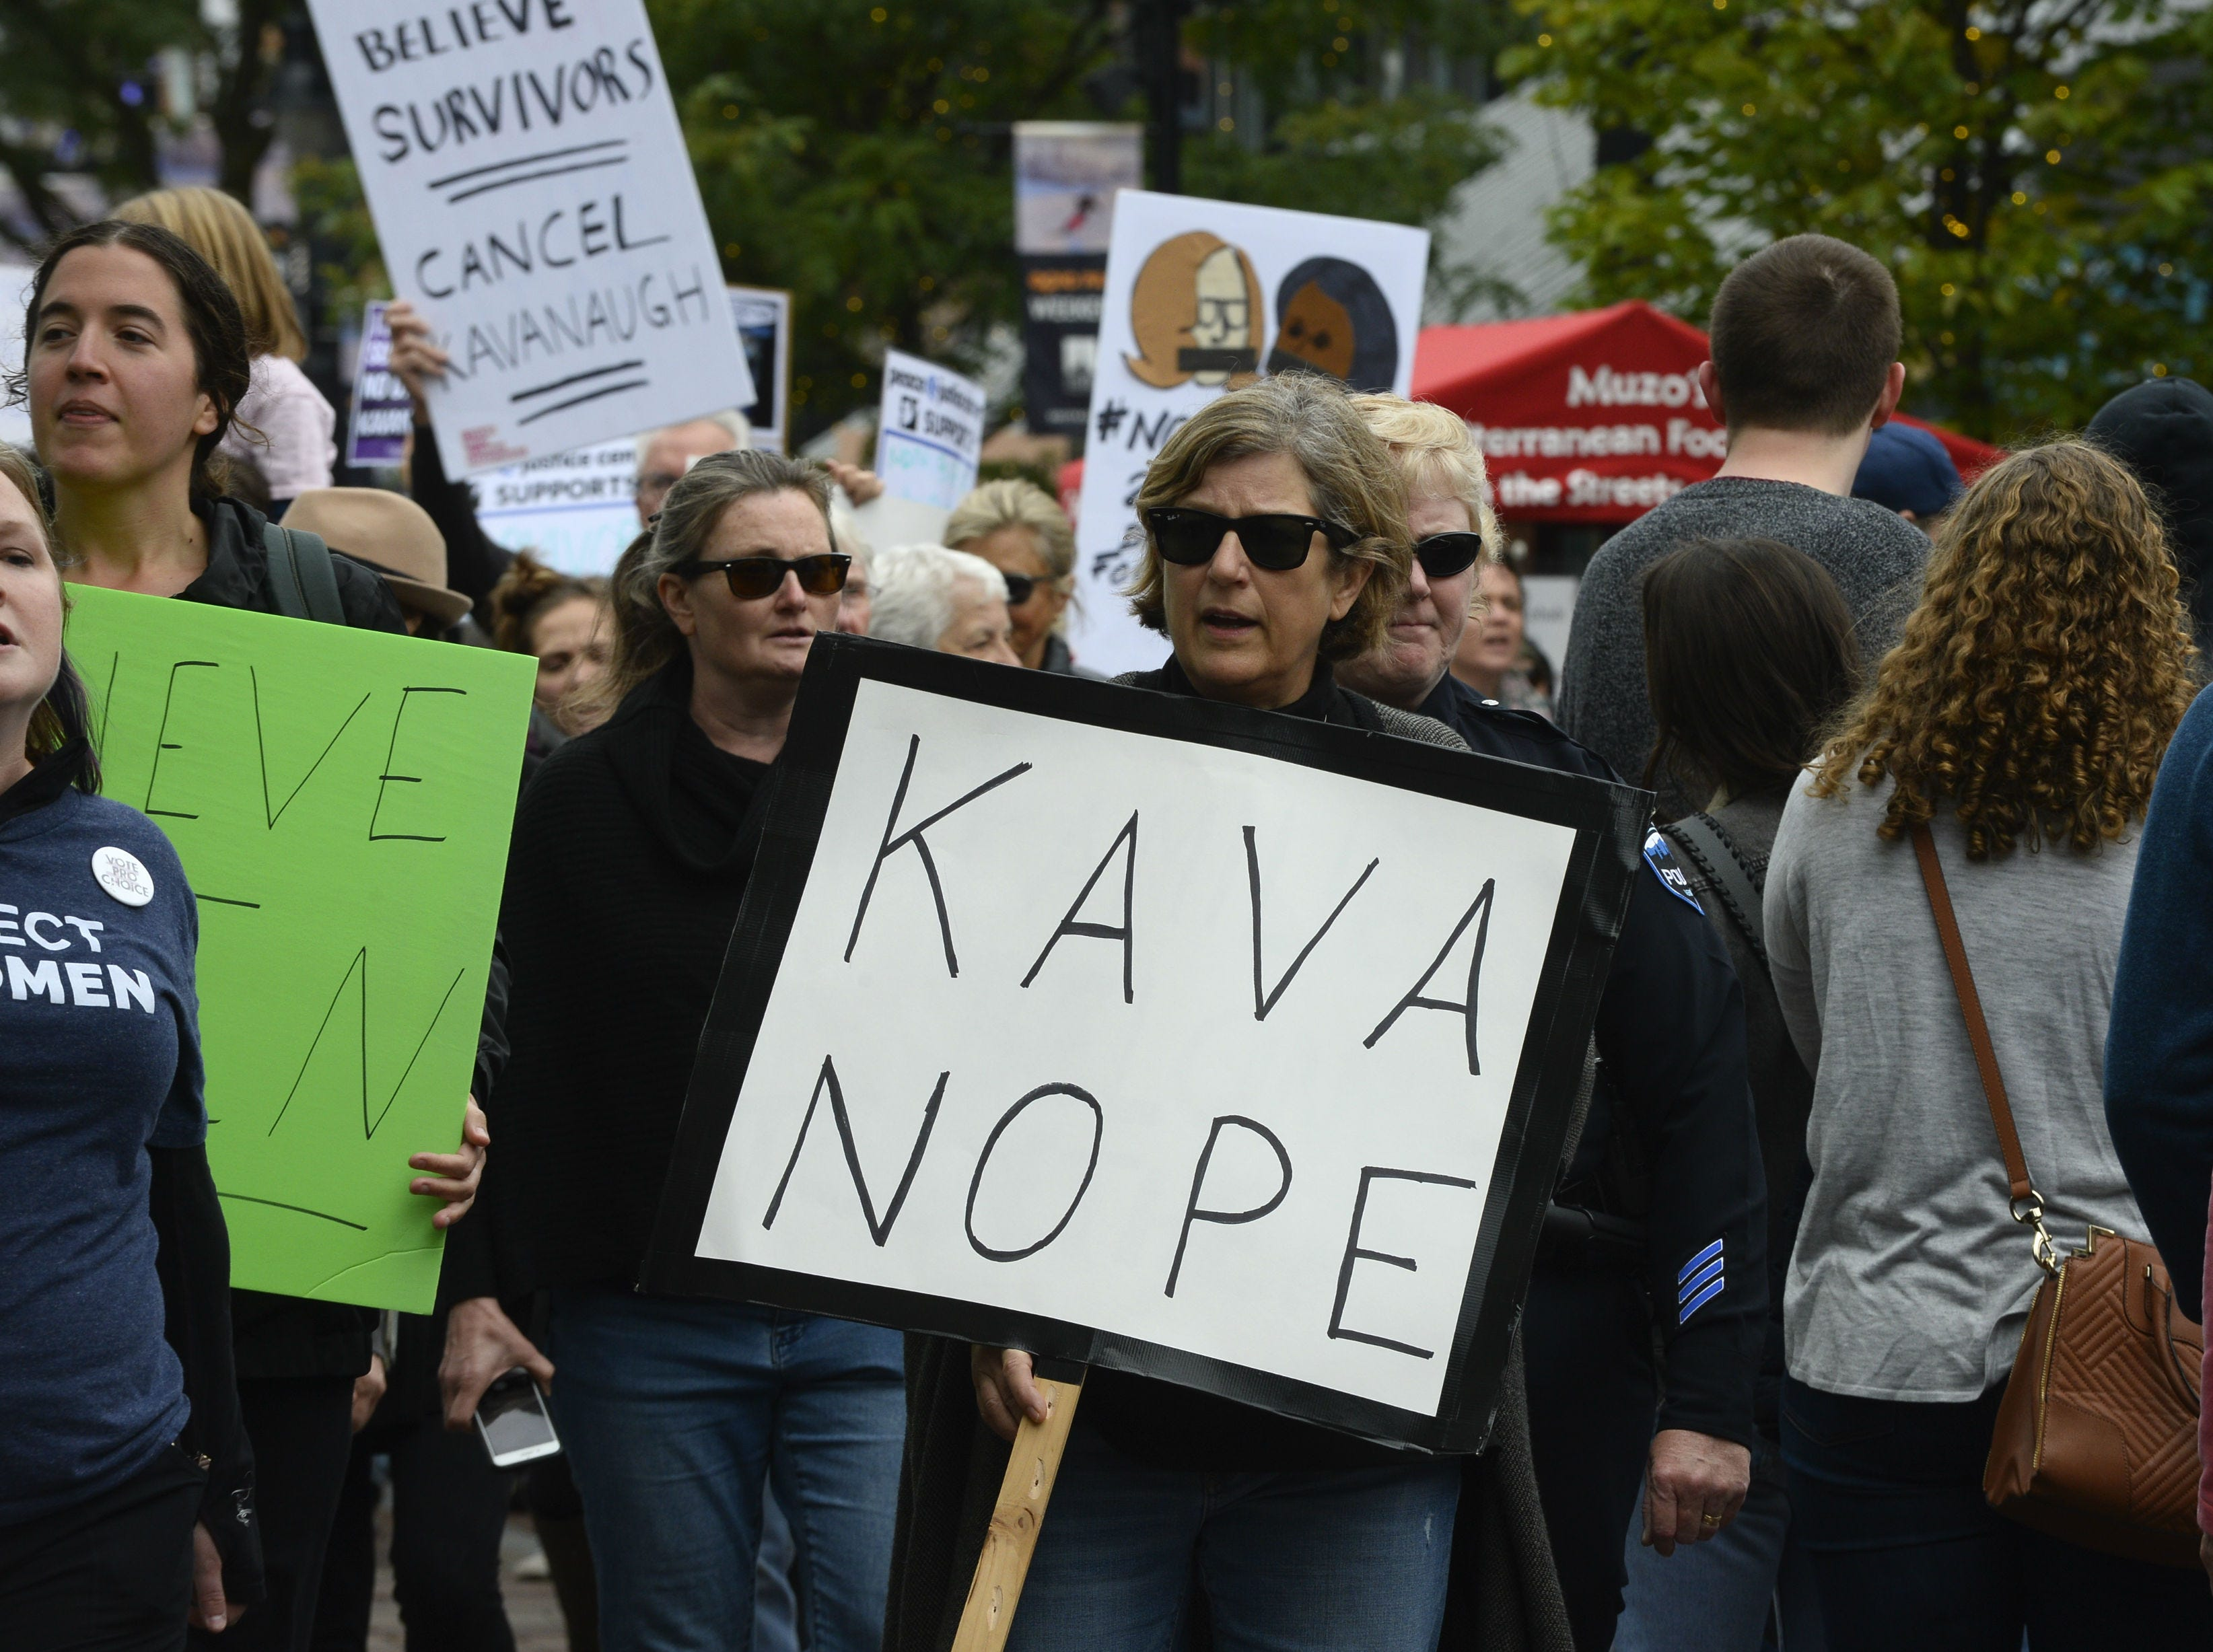 Protesters marched through downtown Burlington Saturday, Oct. 6, 2018, against the confirmation of Supreme Court Justice Brett Kavanaugh. About 100 people turned out for the march down Church Street and around City Hall Park.